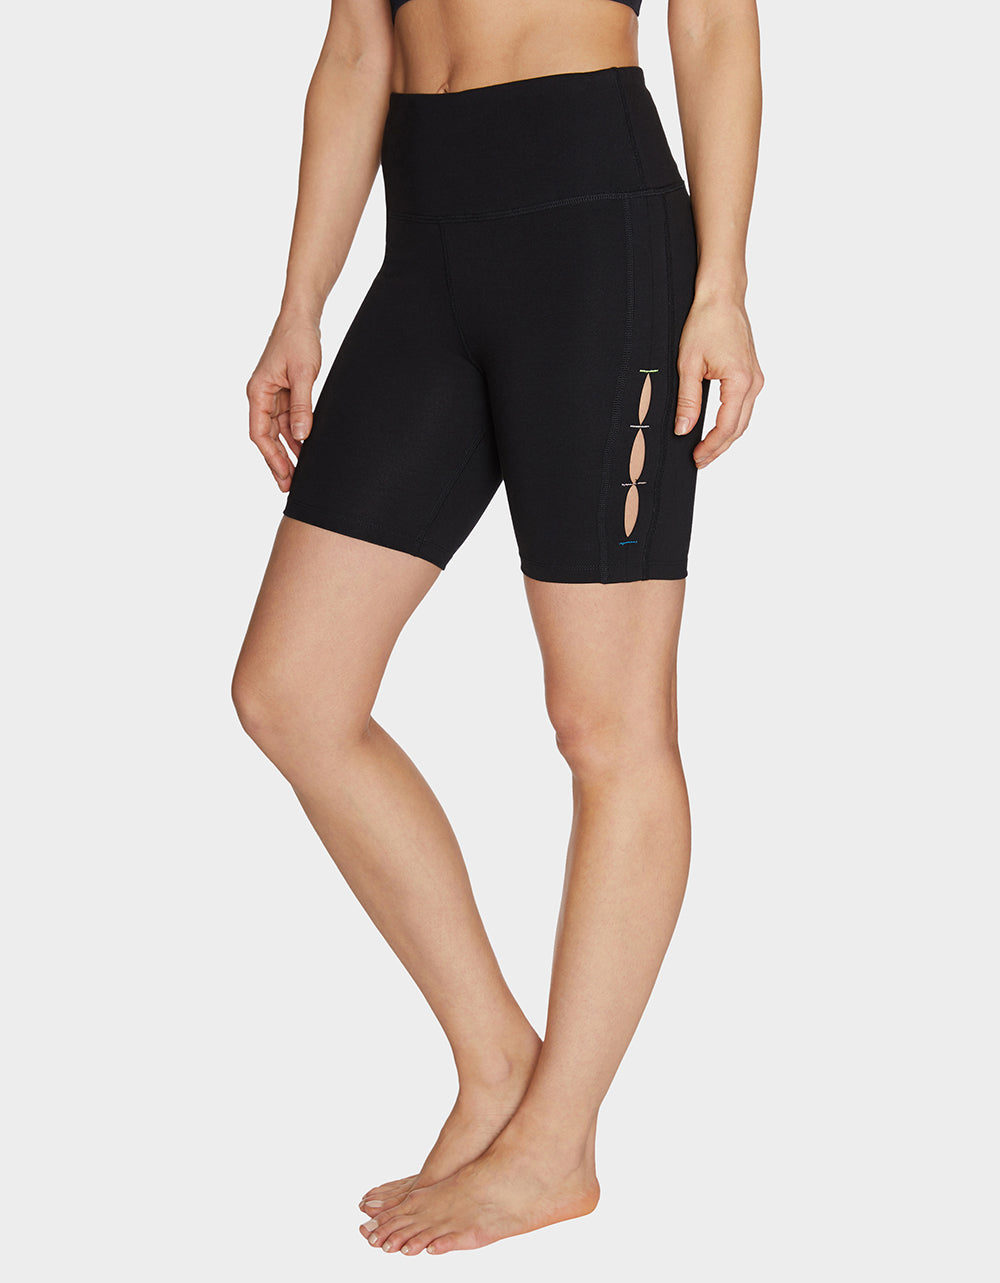 BIKE SHORTS WITH SIDE SLITS BLACK - APPAREL - Betsey Johnson